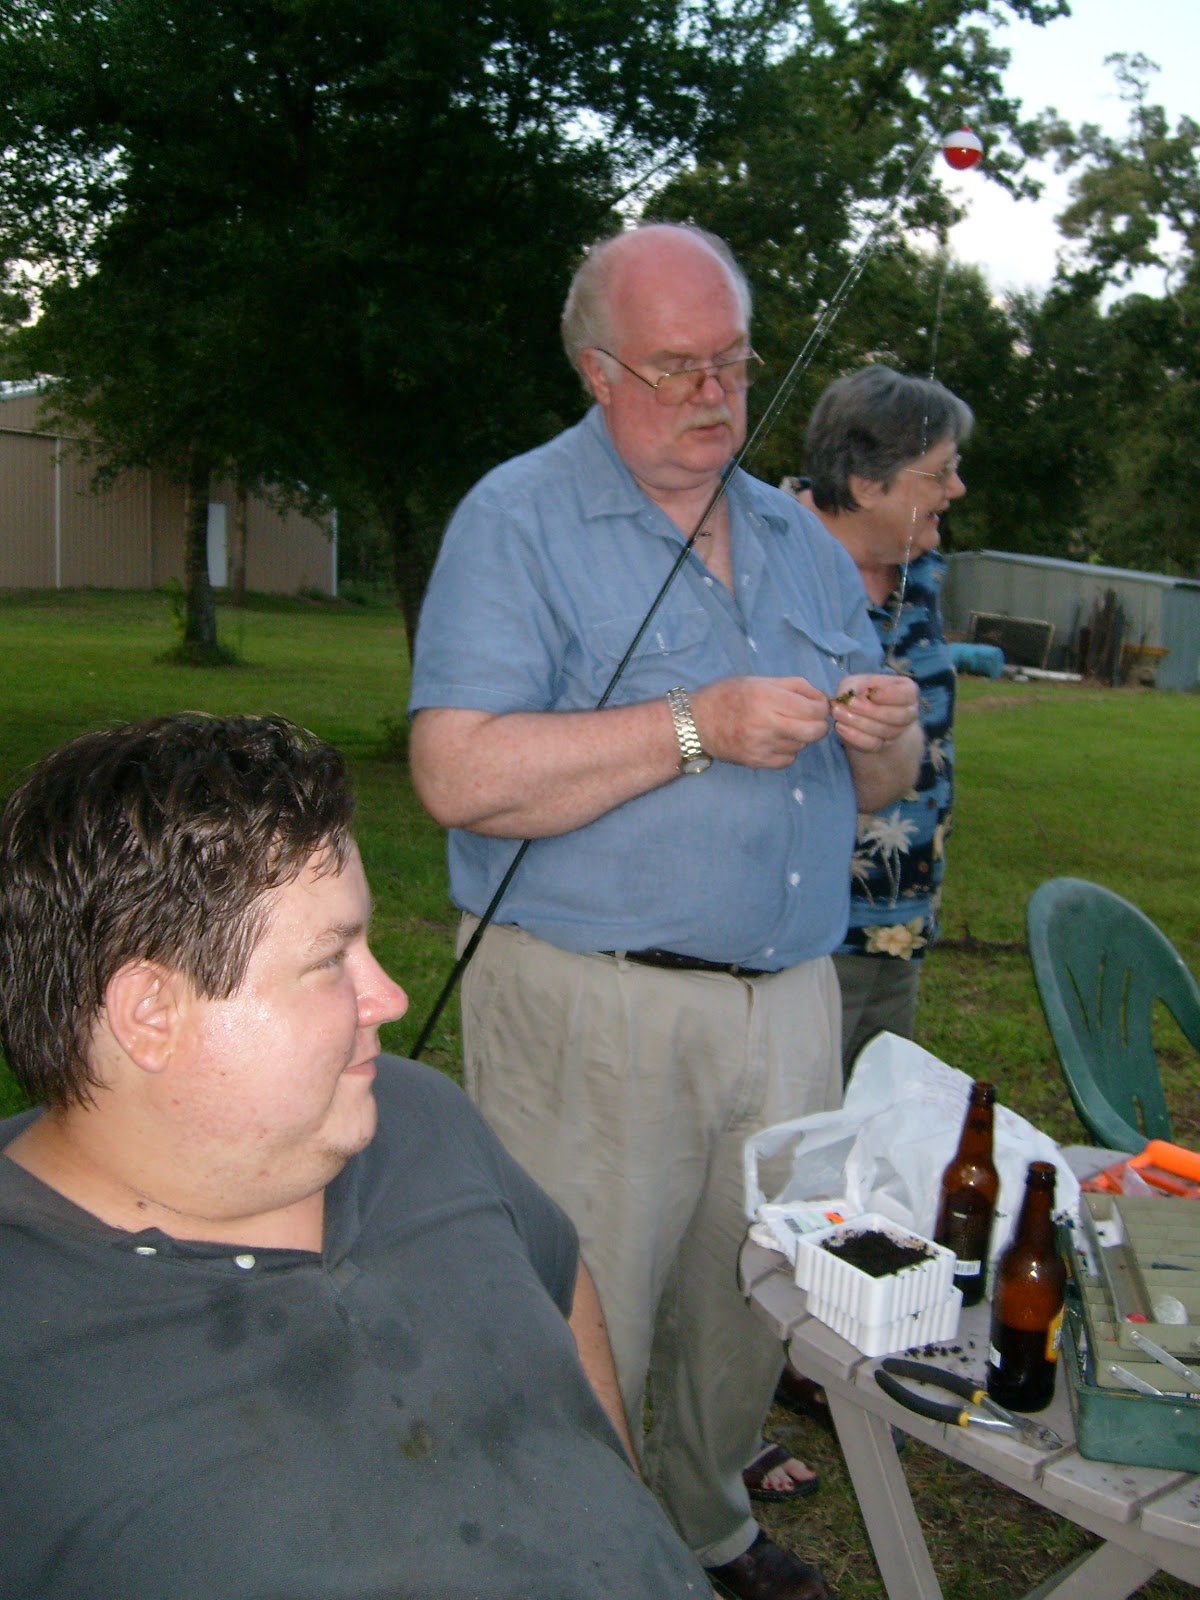 Dads Birthday Party - S7300226.JPG